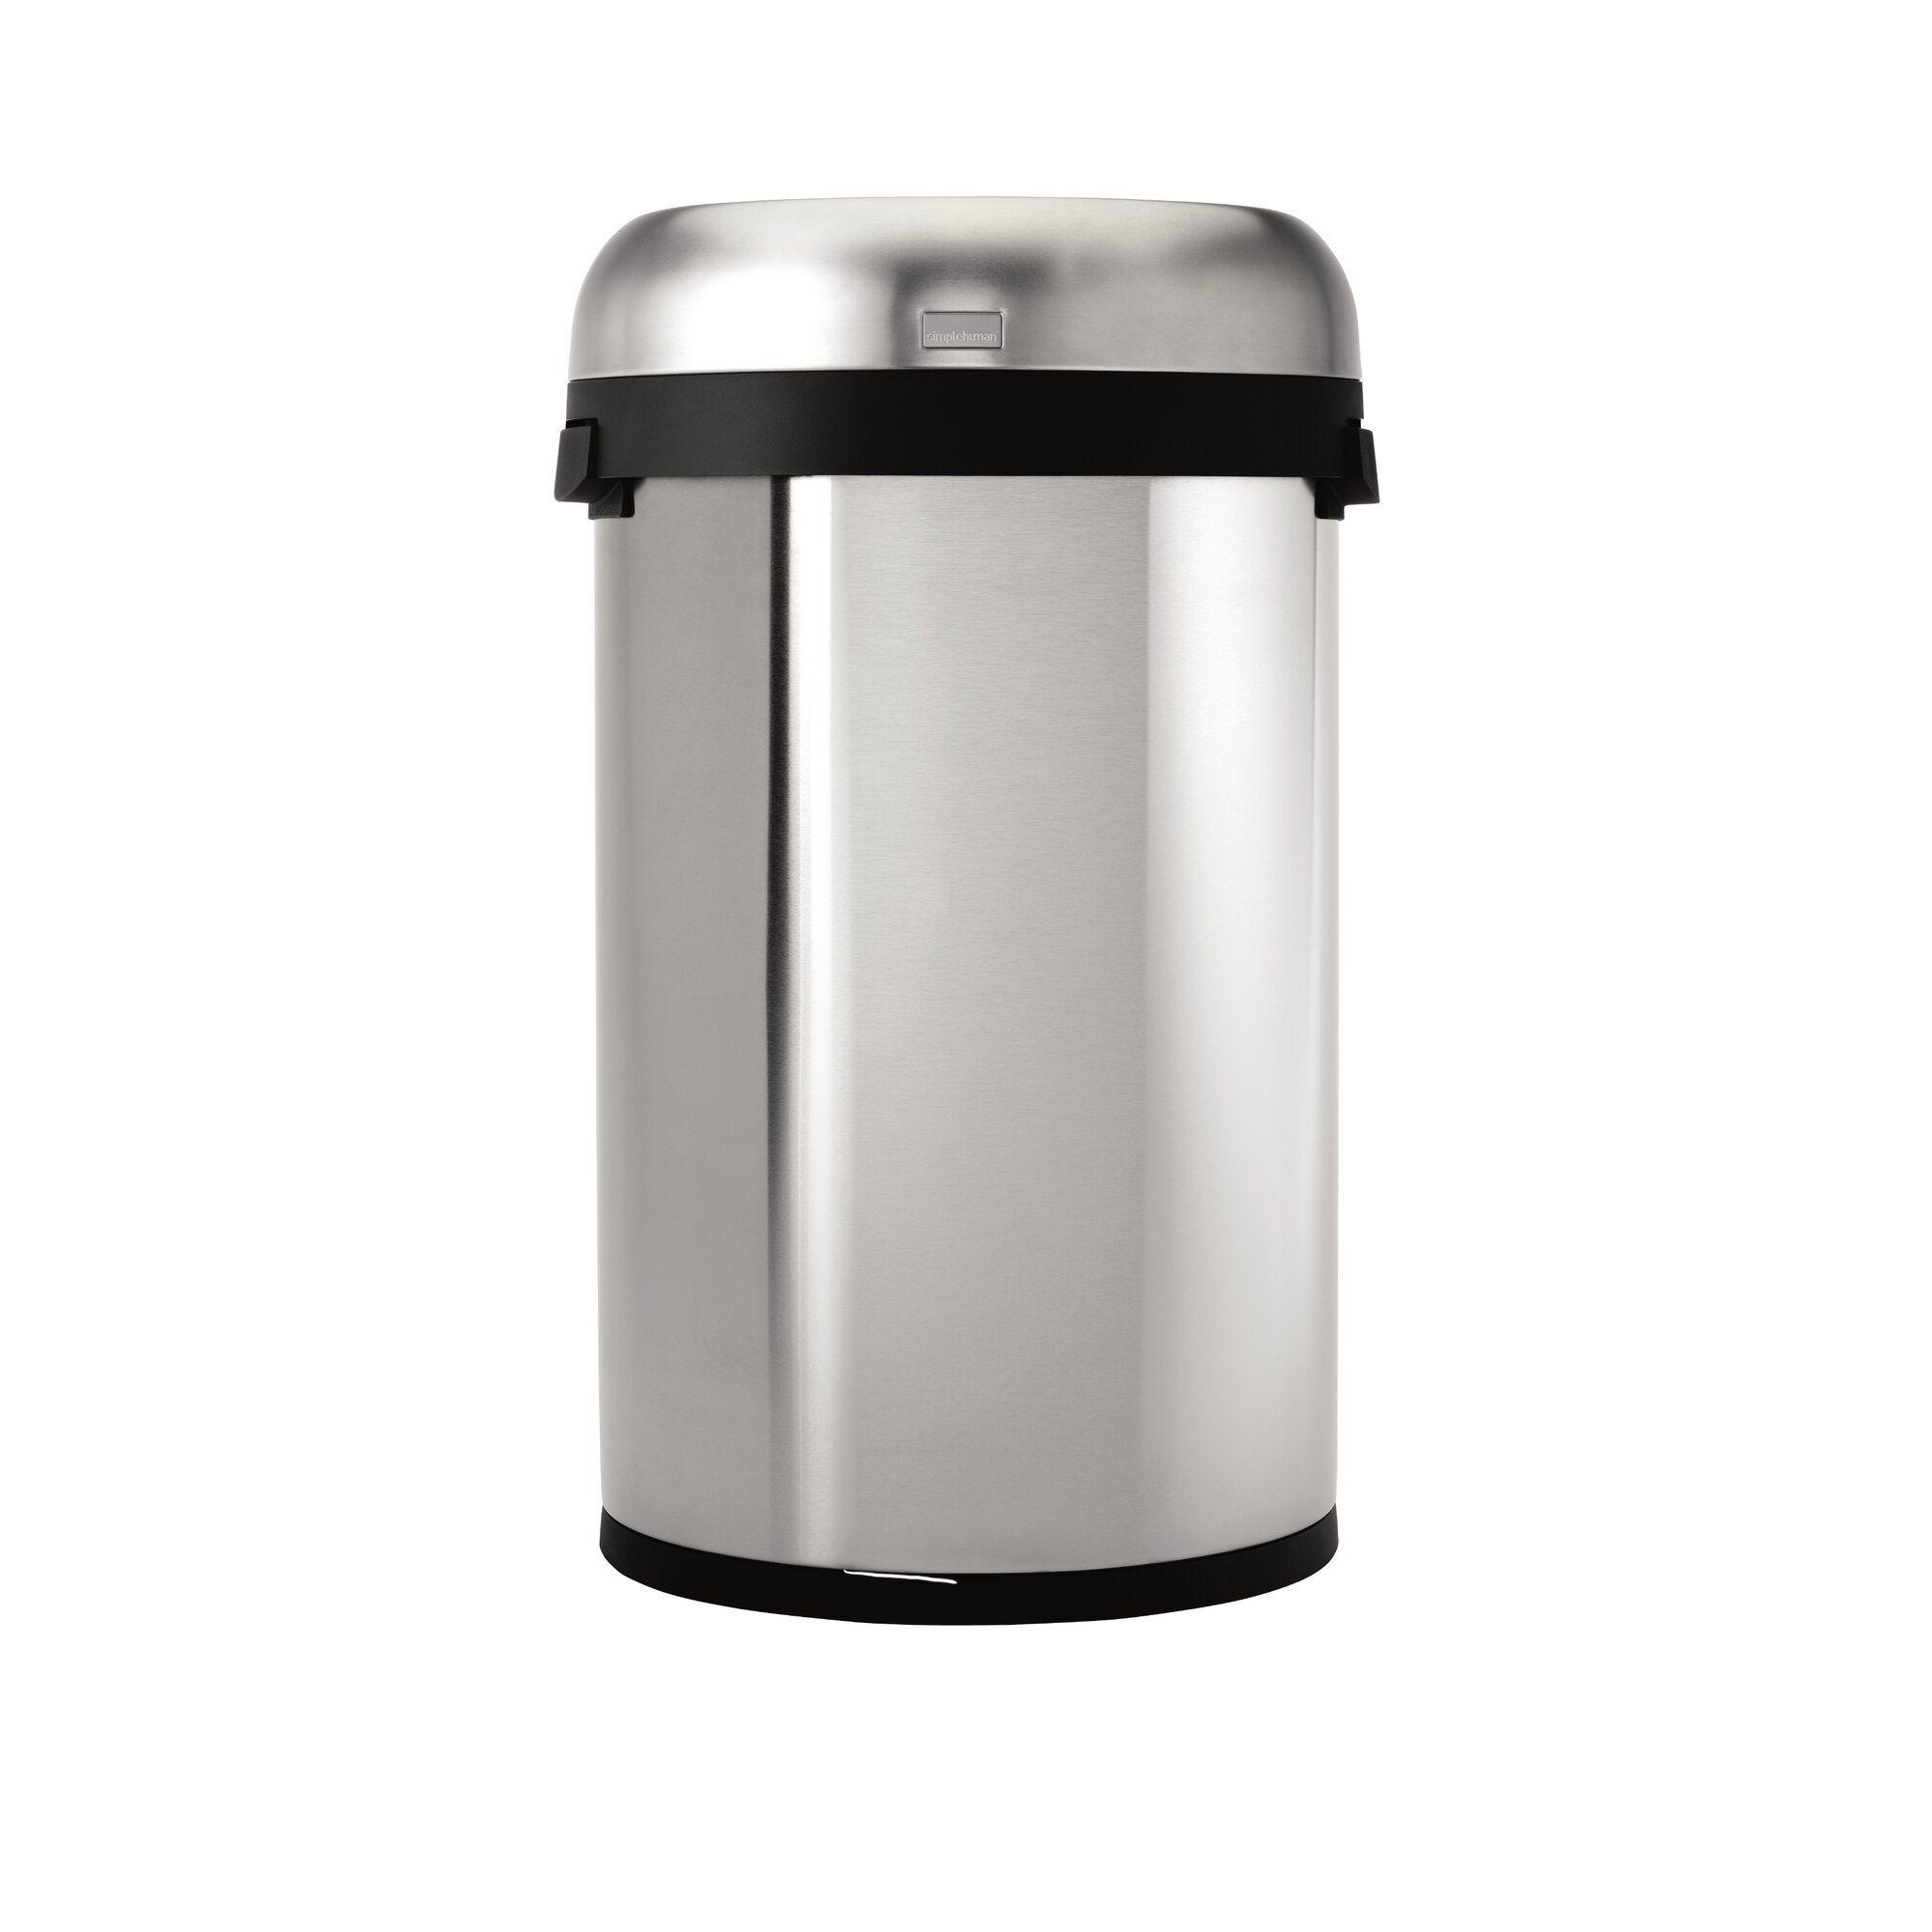 simplehuman stainless steel 16 gallon trash can reviews. Black Bedroom Furniture Sets. Home Design Ideas